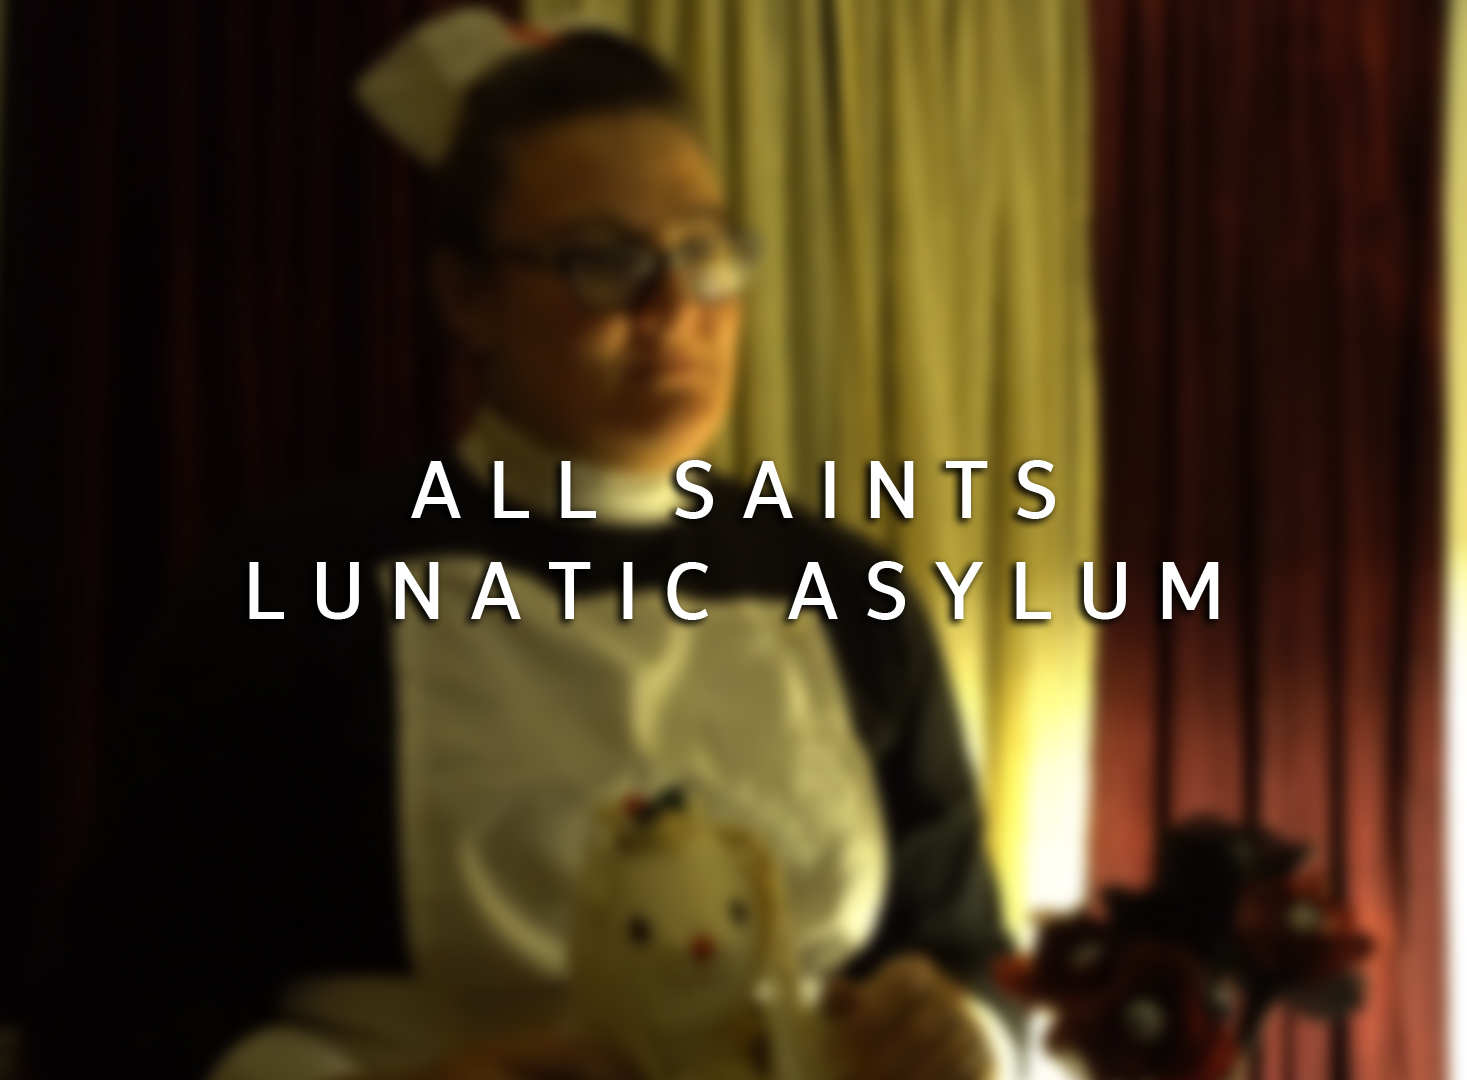 All Saints Lunatic Asylum 2019